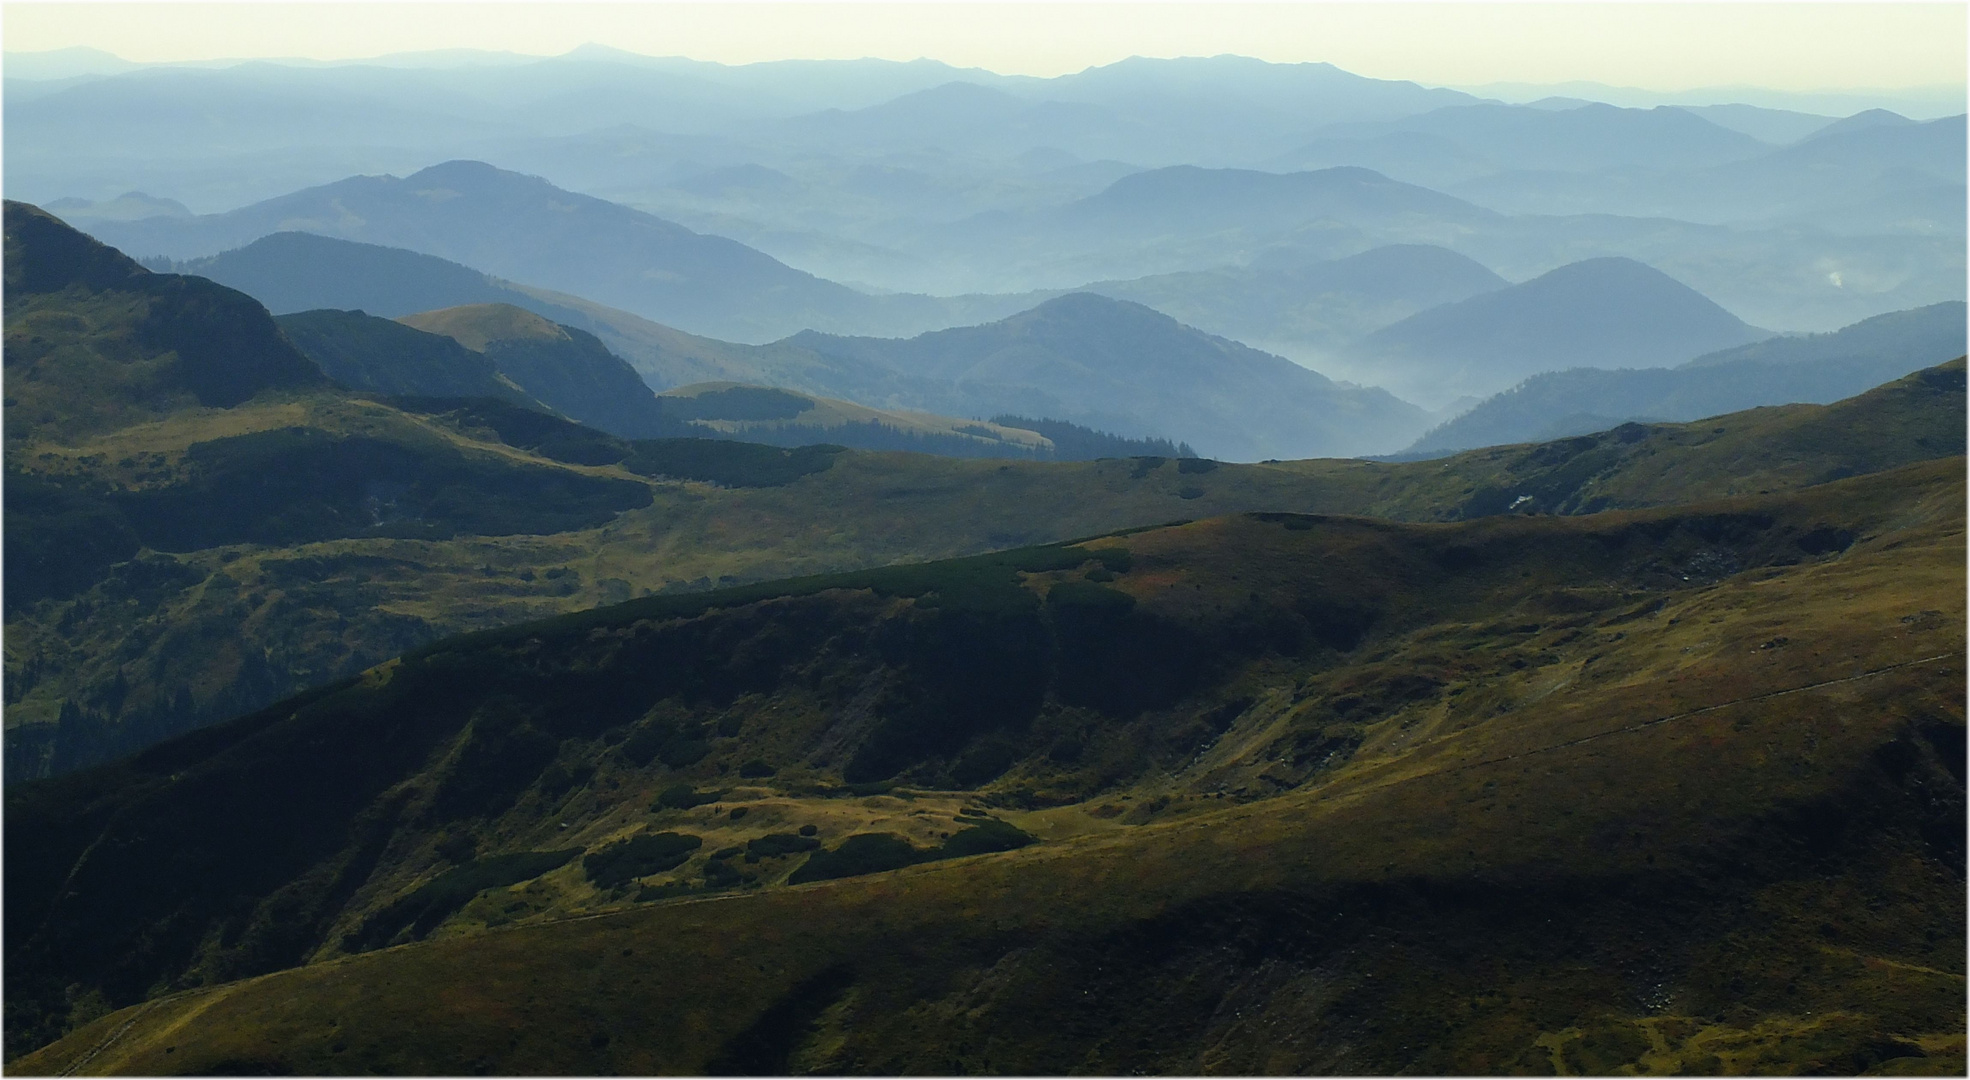 Eastern Carpathians